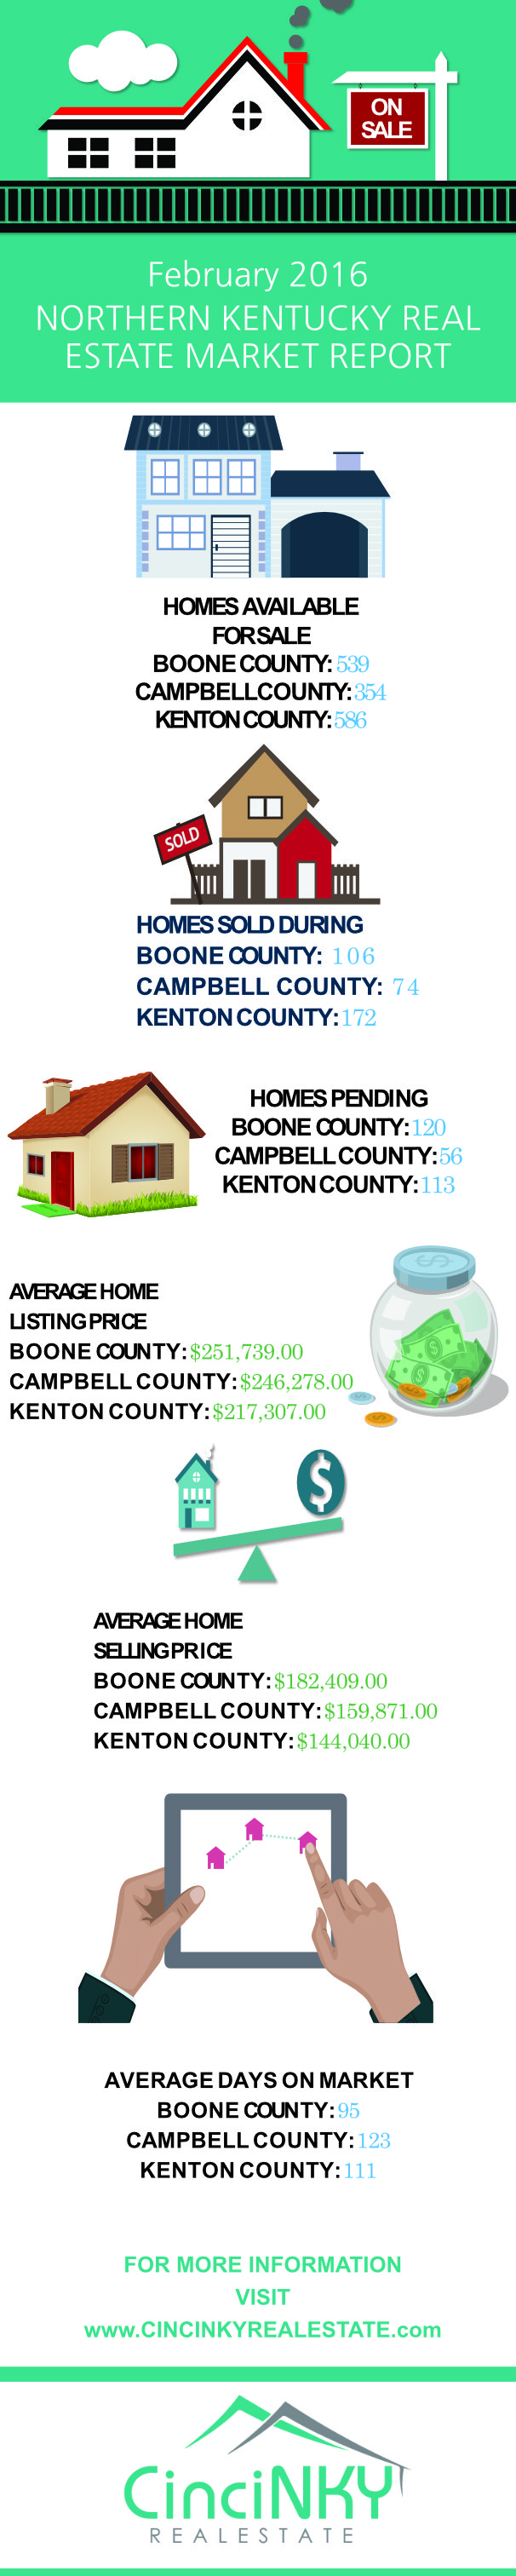 february northern kentucky real estate market report